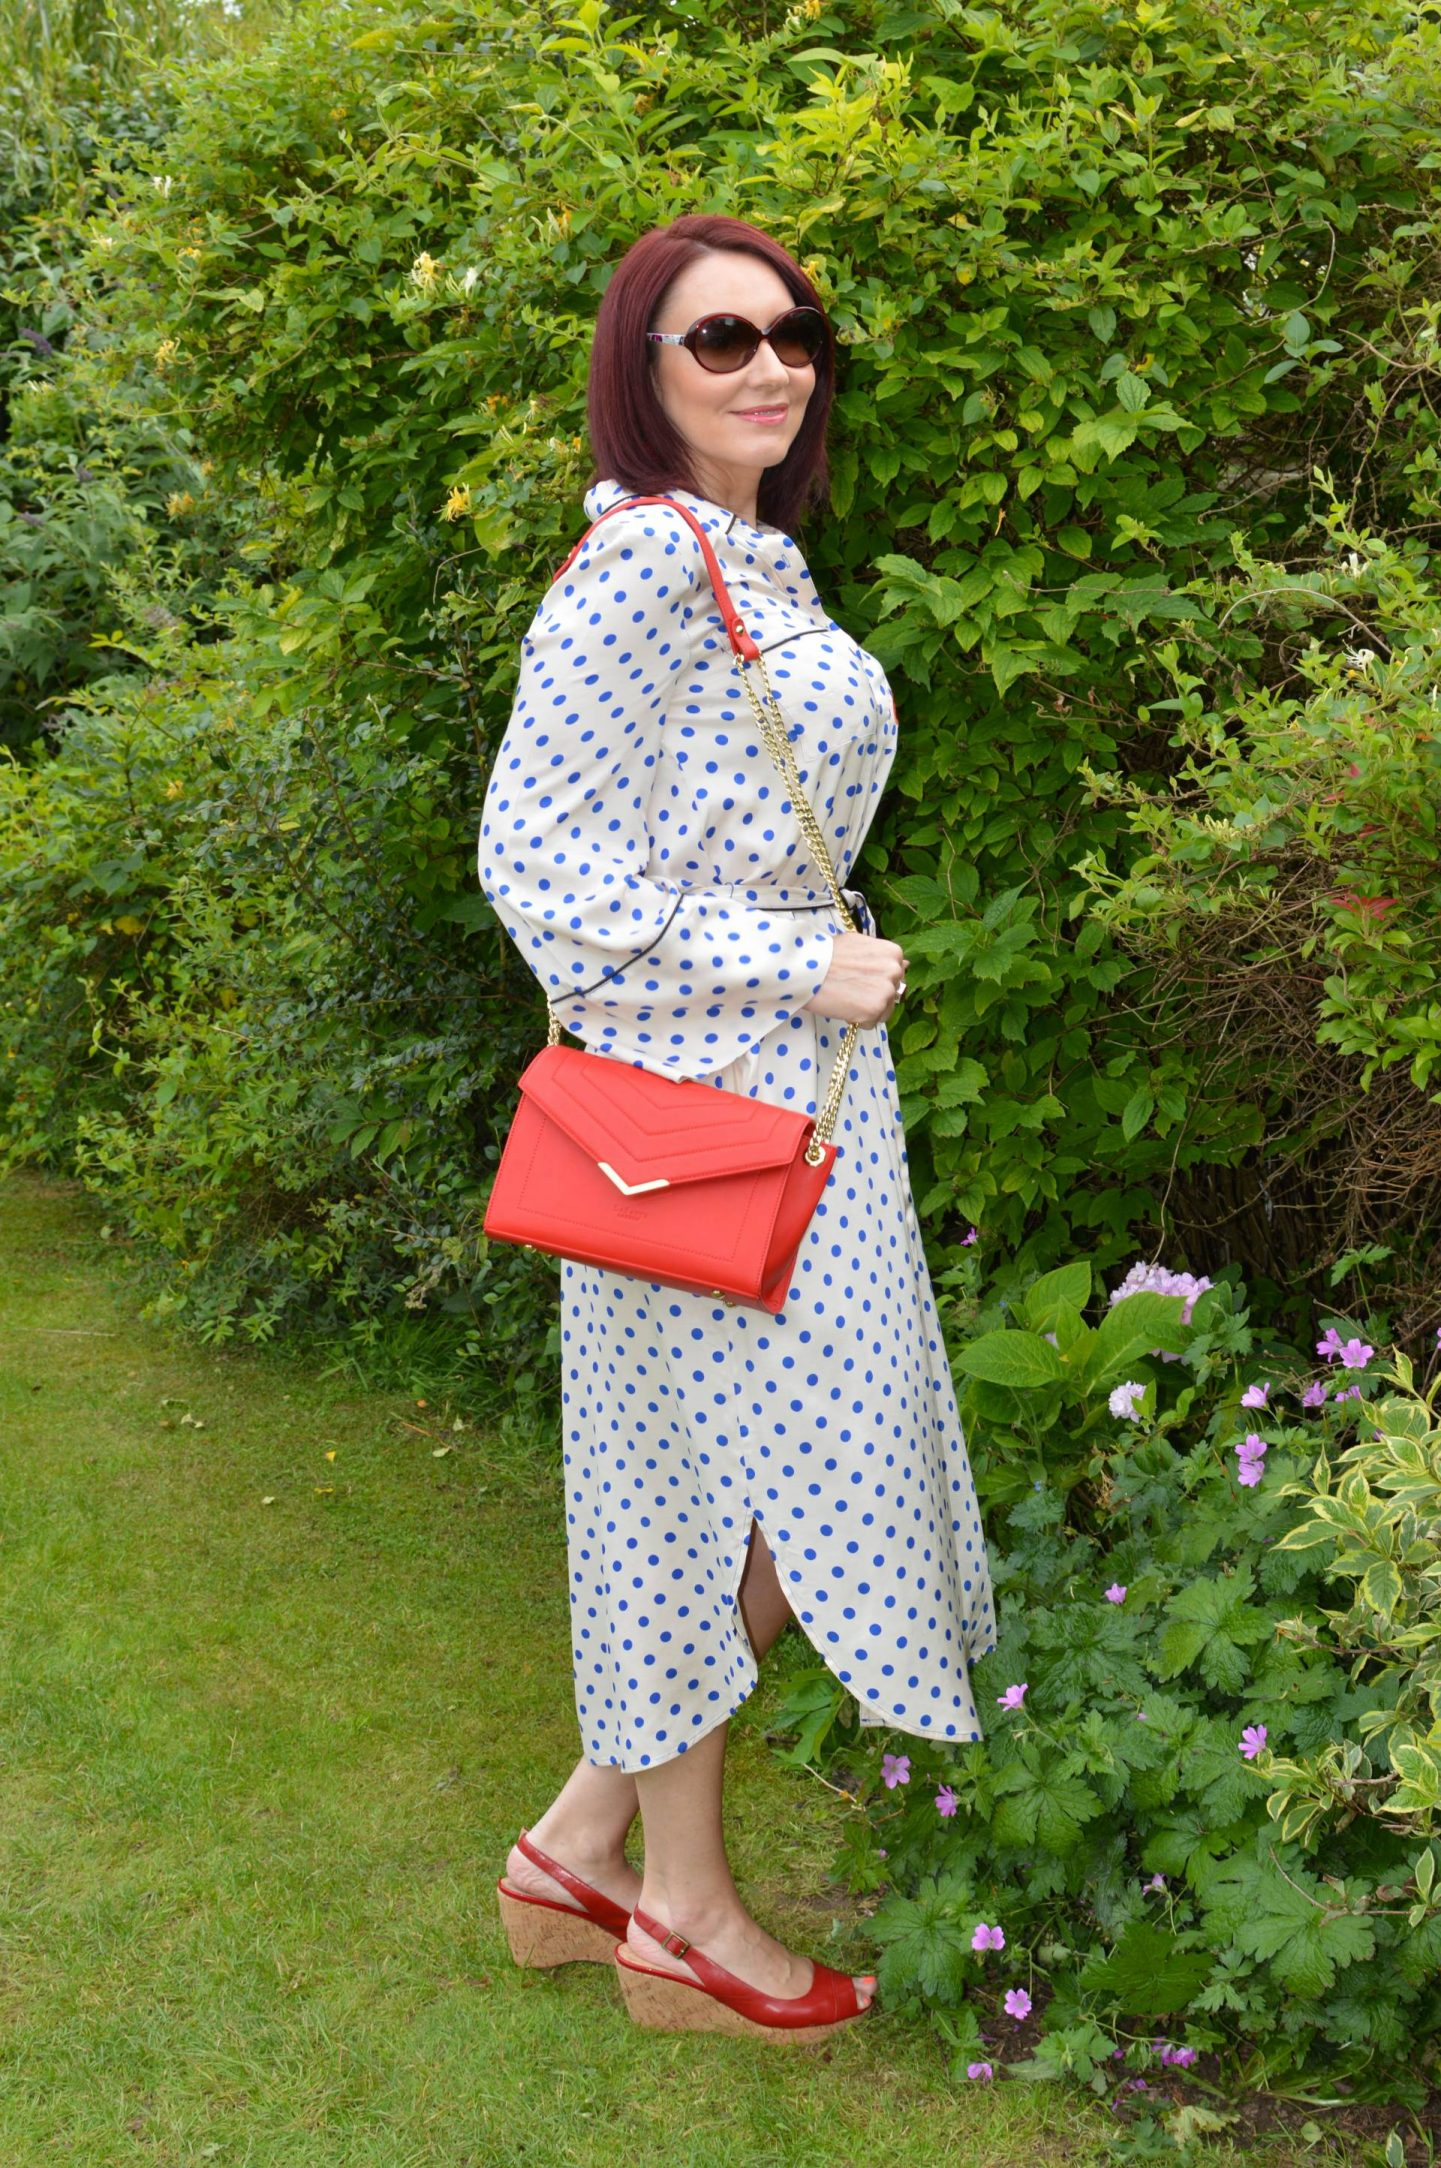 Essential Antwerp Shirt polka dot Dress. LaBante vegan leather red bag